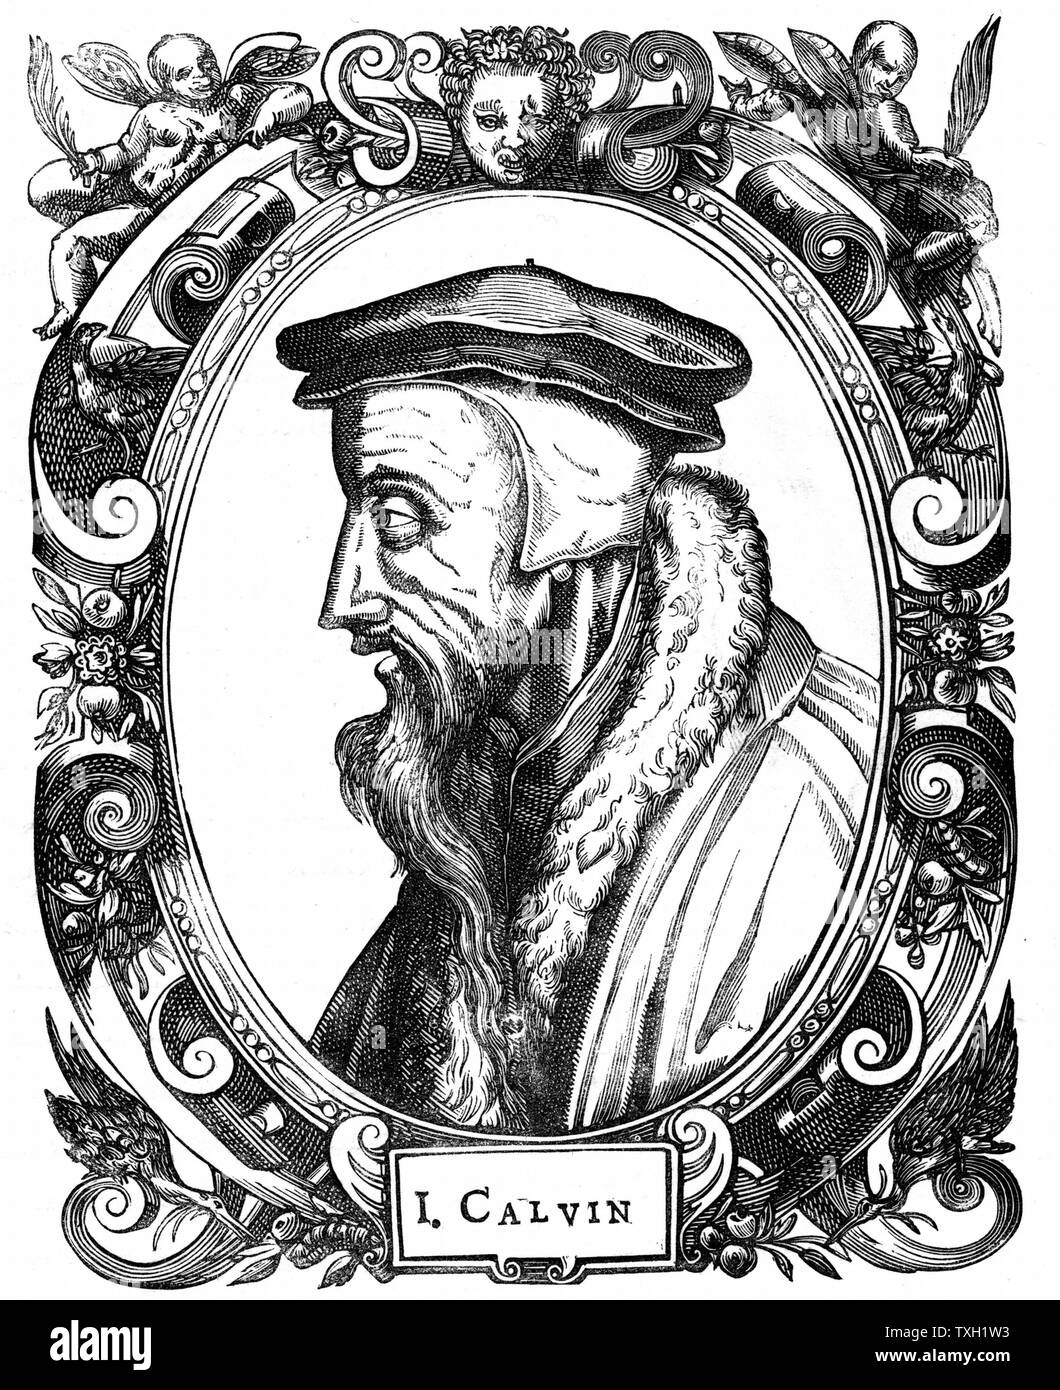 Jean Calvin French theologian and protestant reformer. He settled in Geneva and was leading figure in the Protestant Reformation. He gave his name to the protestant doctrine, the Calvinism.  Woodcut Stock Photo